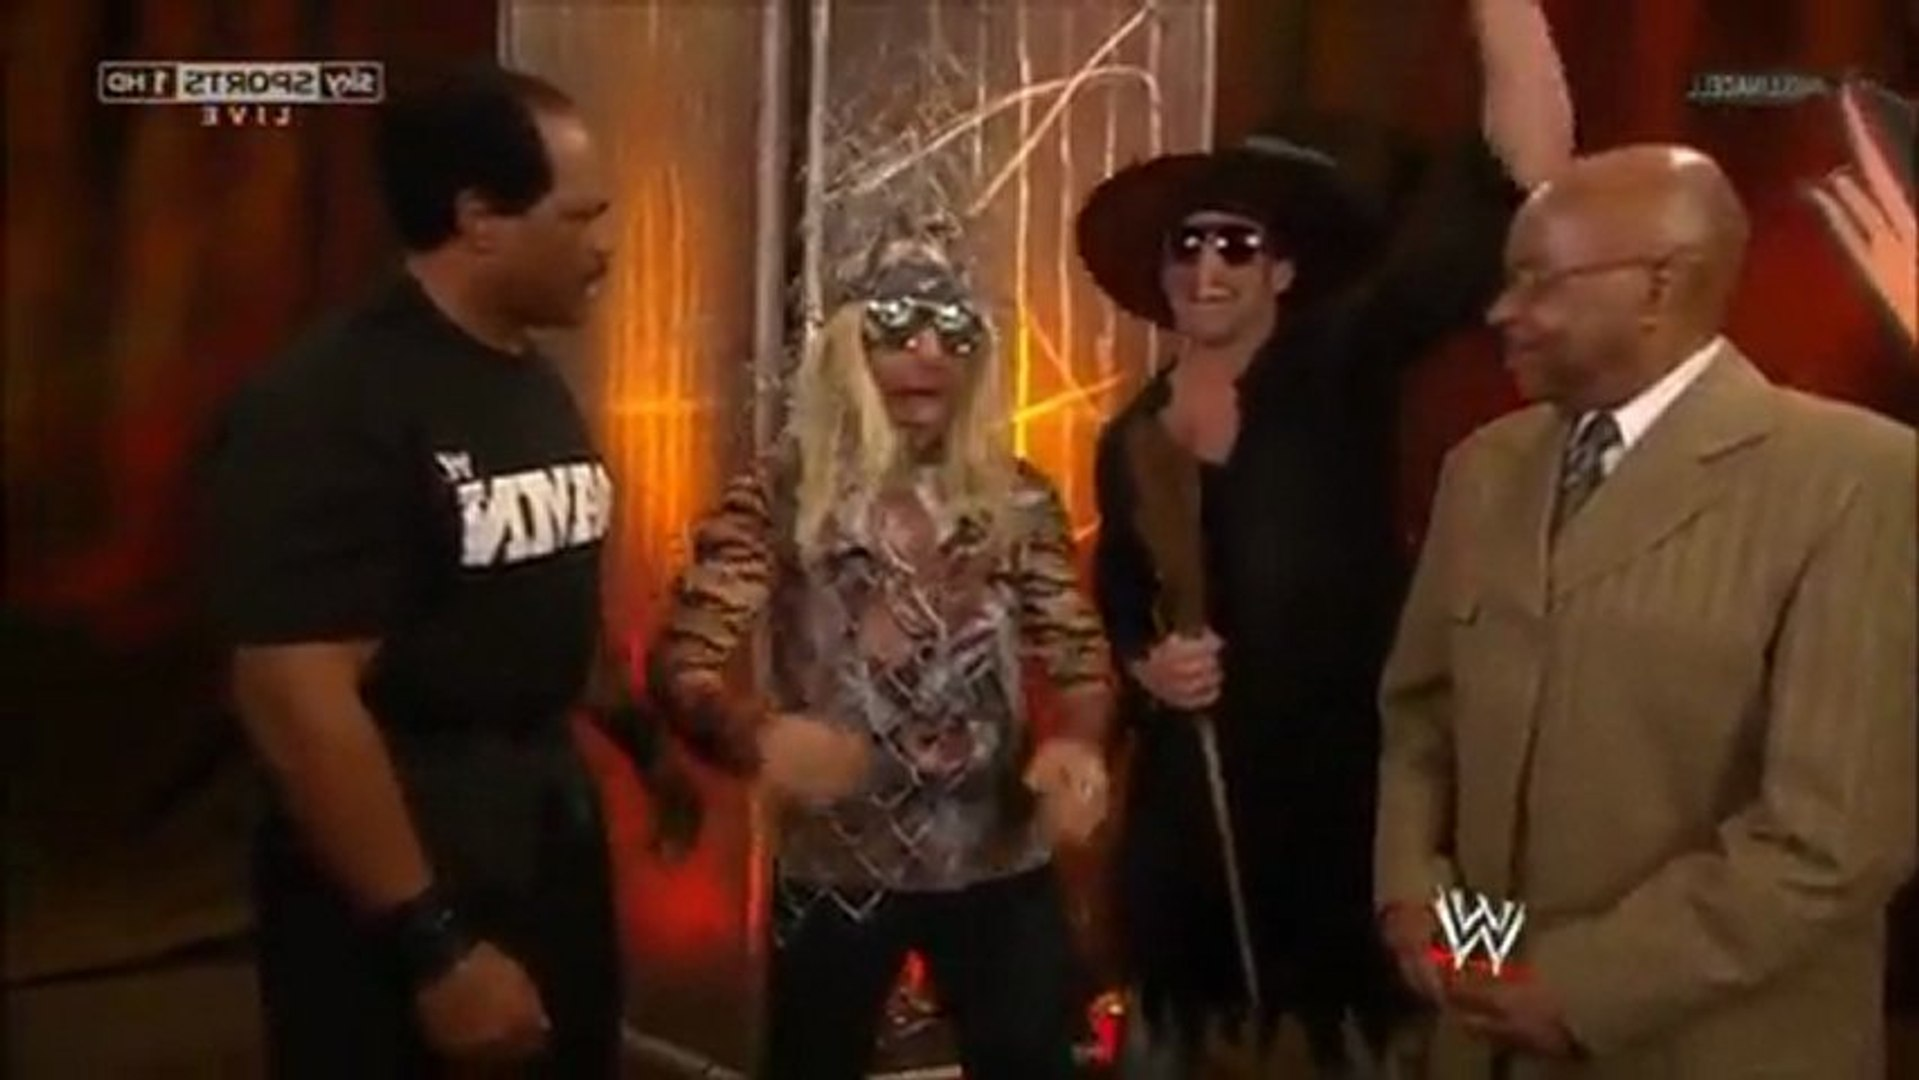 Zack Ryder, Teddy Long, and Eve Torres @ Hell in a Cell (2012)